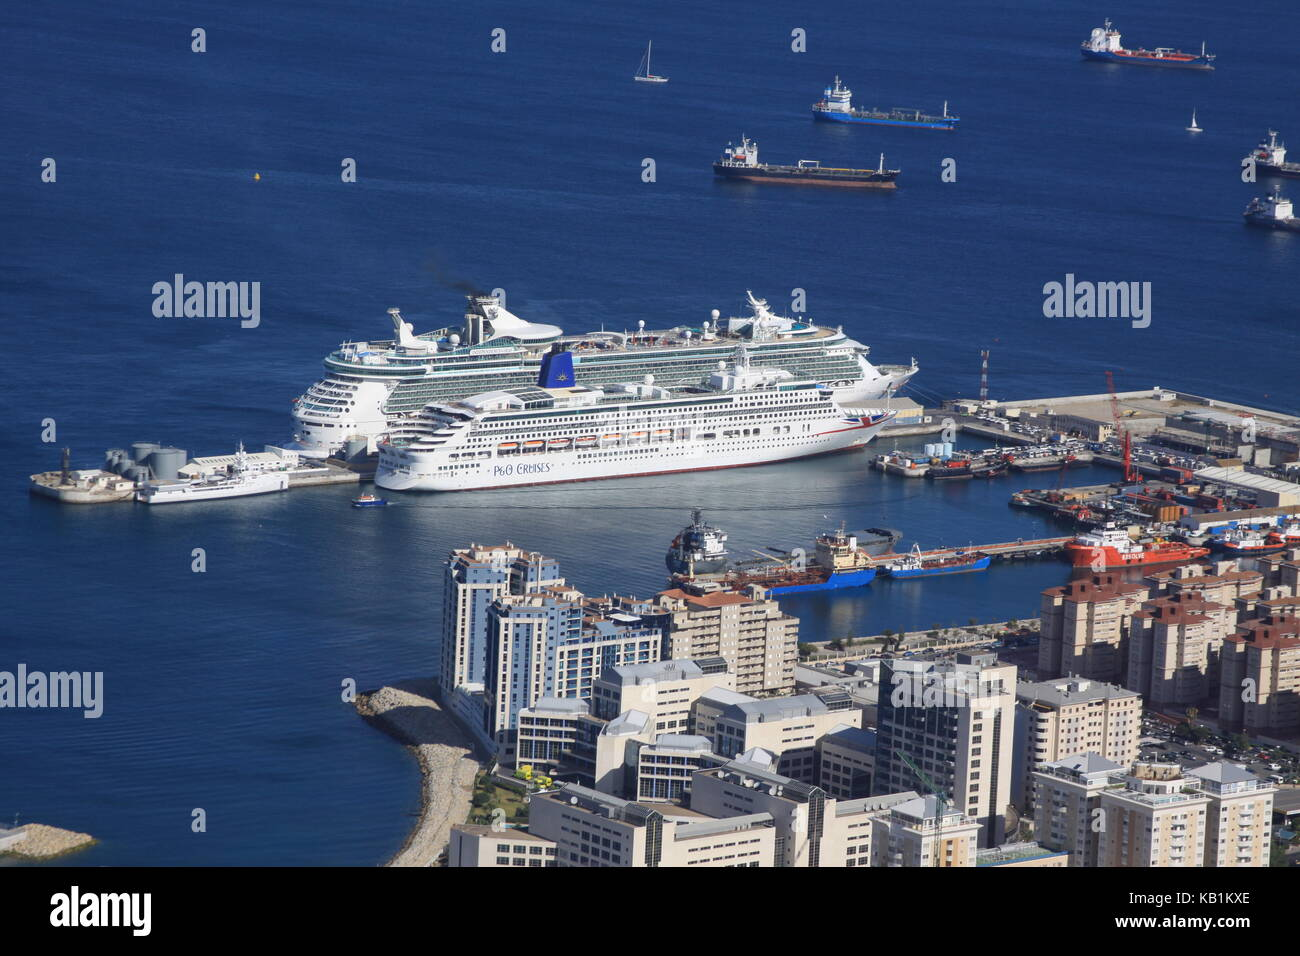 Cruise Ships P&O Aurora & Royal Caribbean Cruise Independence of the Sea moored in Gibraltar Harbour - Stock Image